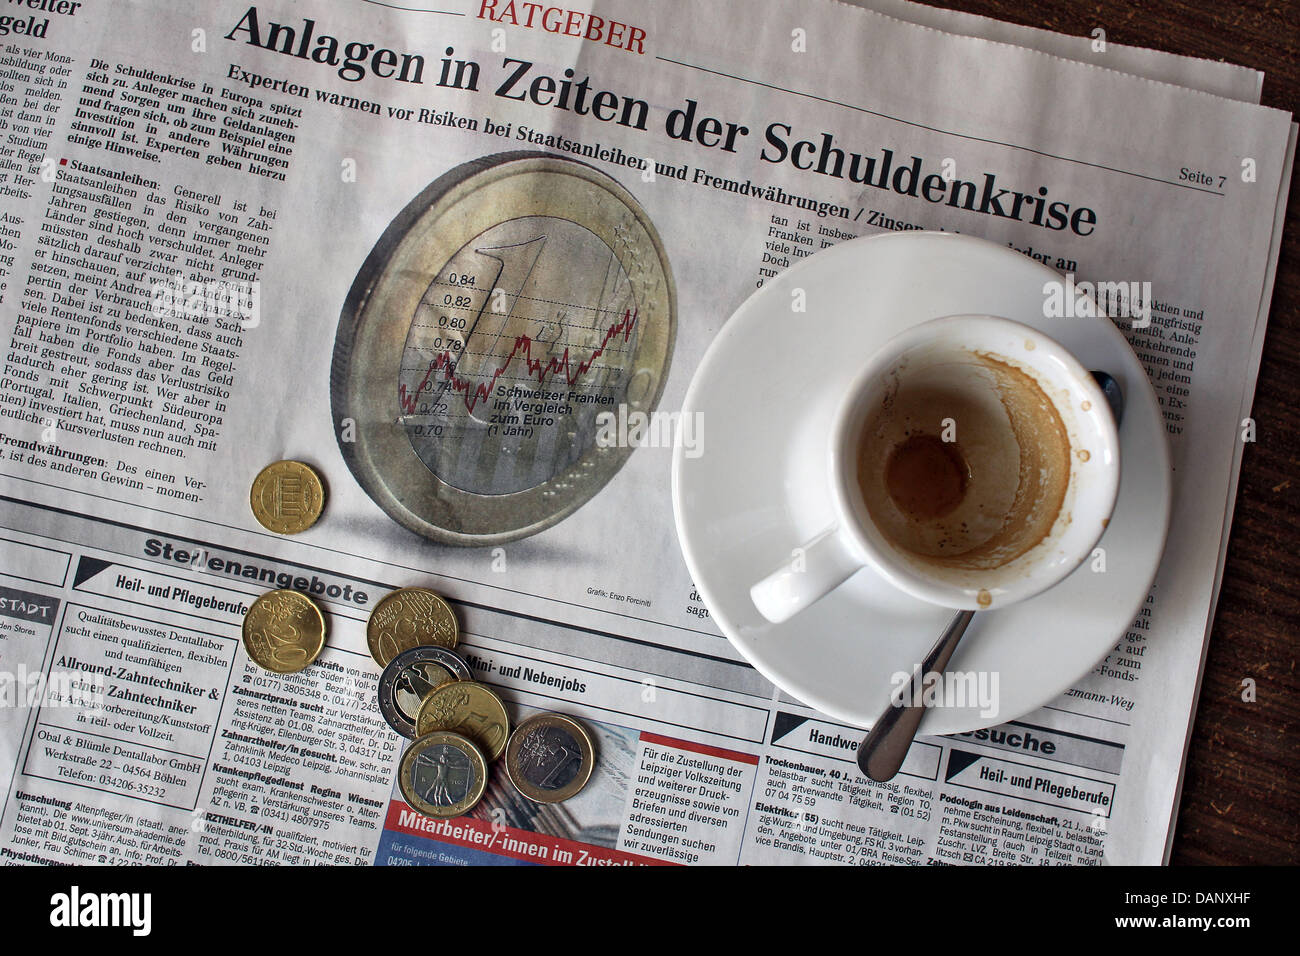 (ILLUSTRATION)An illustration dated 13 July 2011 shows an empty espresso cup on top of the economic advice - Stock Image